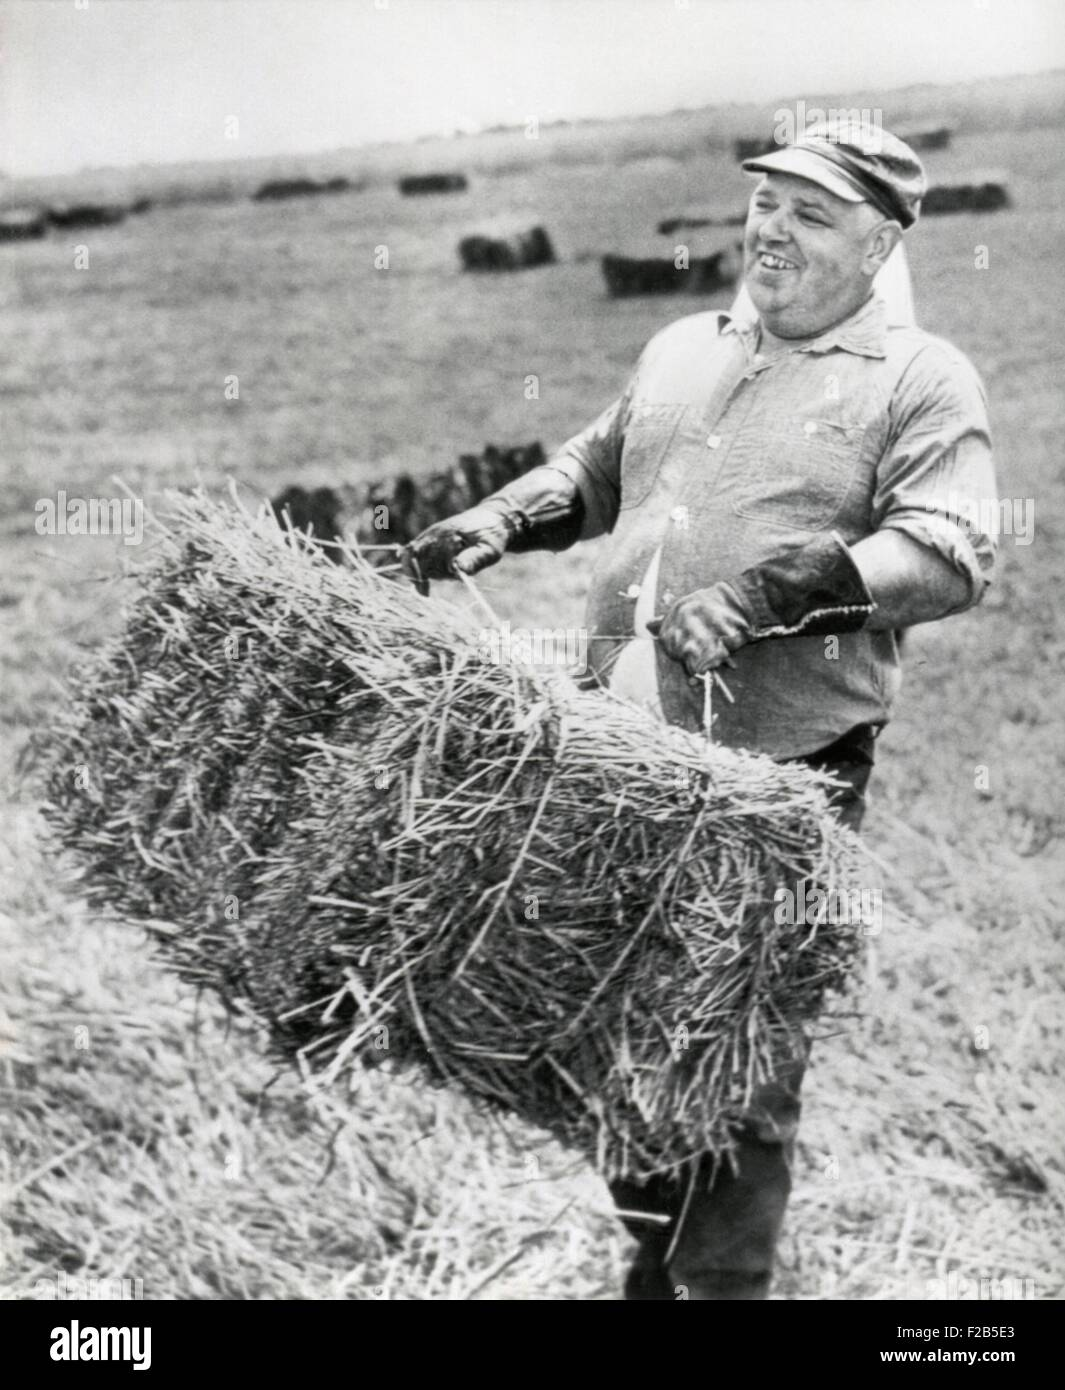 Whittaker Chambers, at work on his farm in Westminster Maryland. July 10, 1949. He was chief prosecution witness - Stock Image